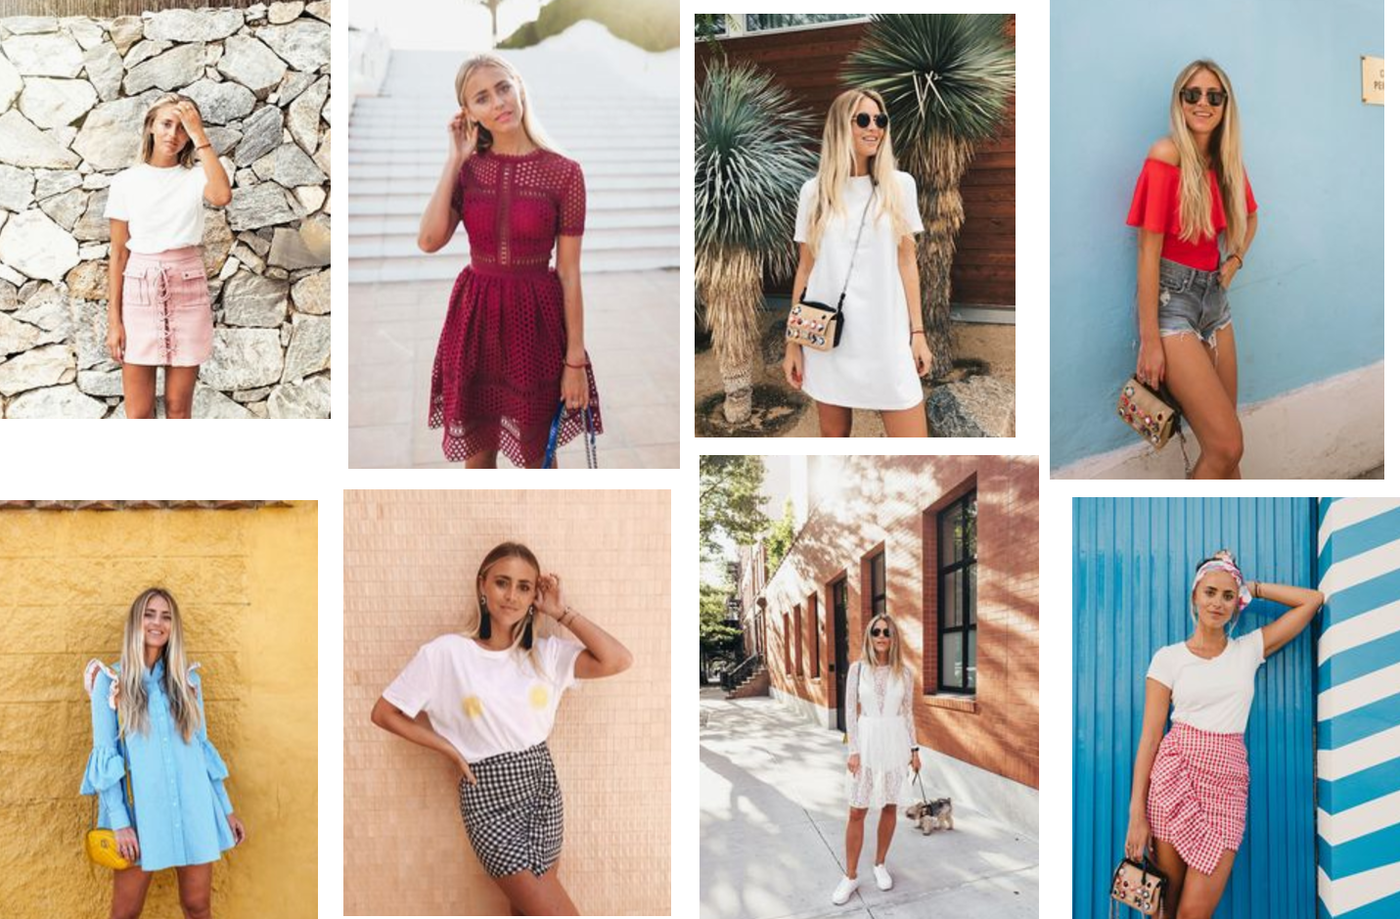 SUMMER OUTFIT INSPO BY JANNI DELÉR